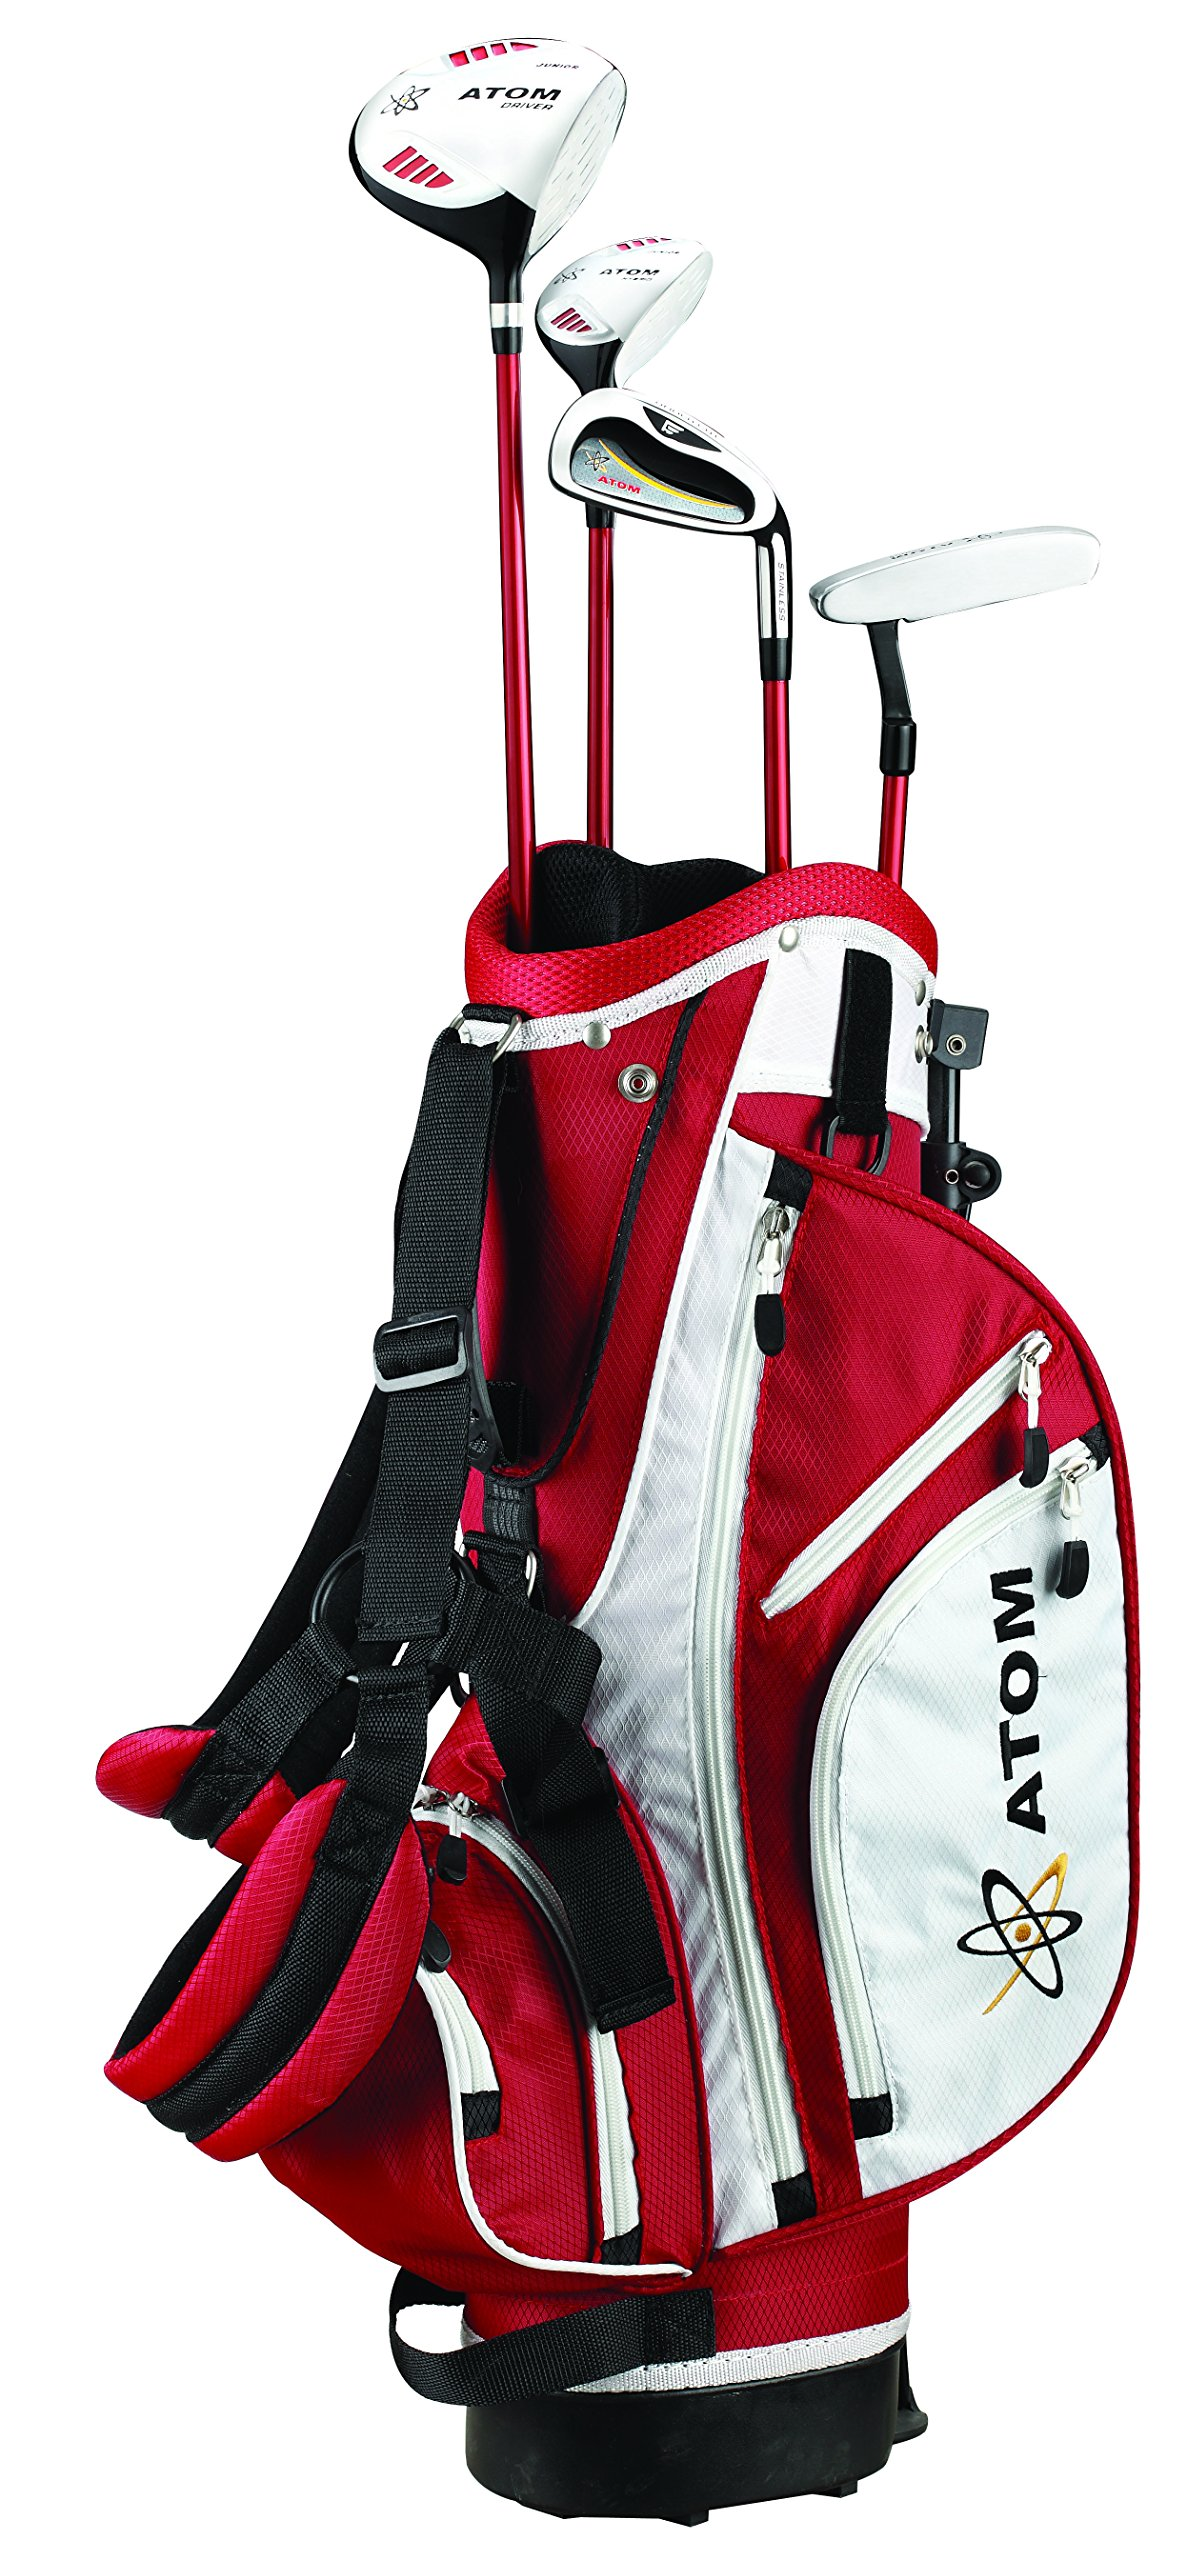 ATOM Complete Junior Golf Set, Youth 45-54'' tall, Ages 6 -10, Right-handed by Founders Club (Image #1)